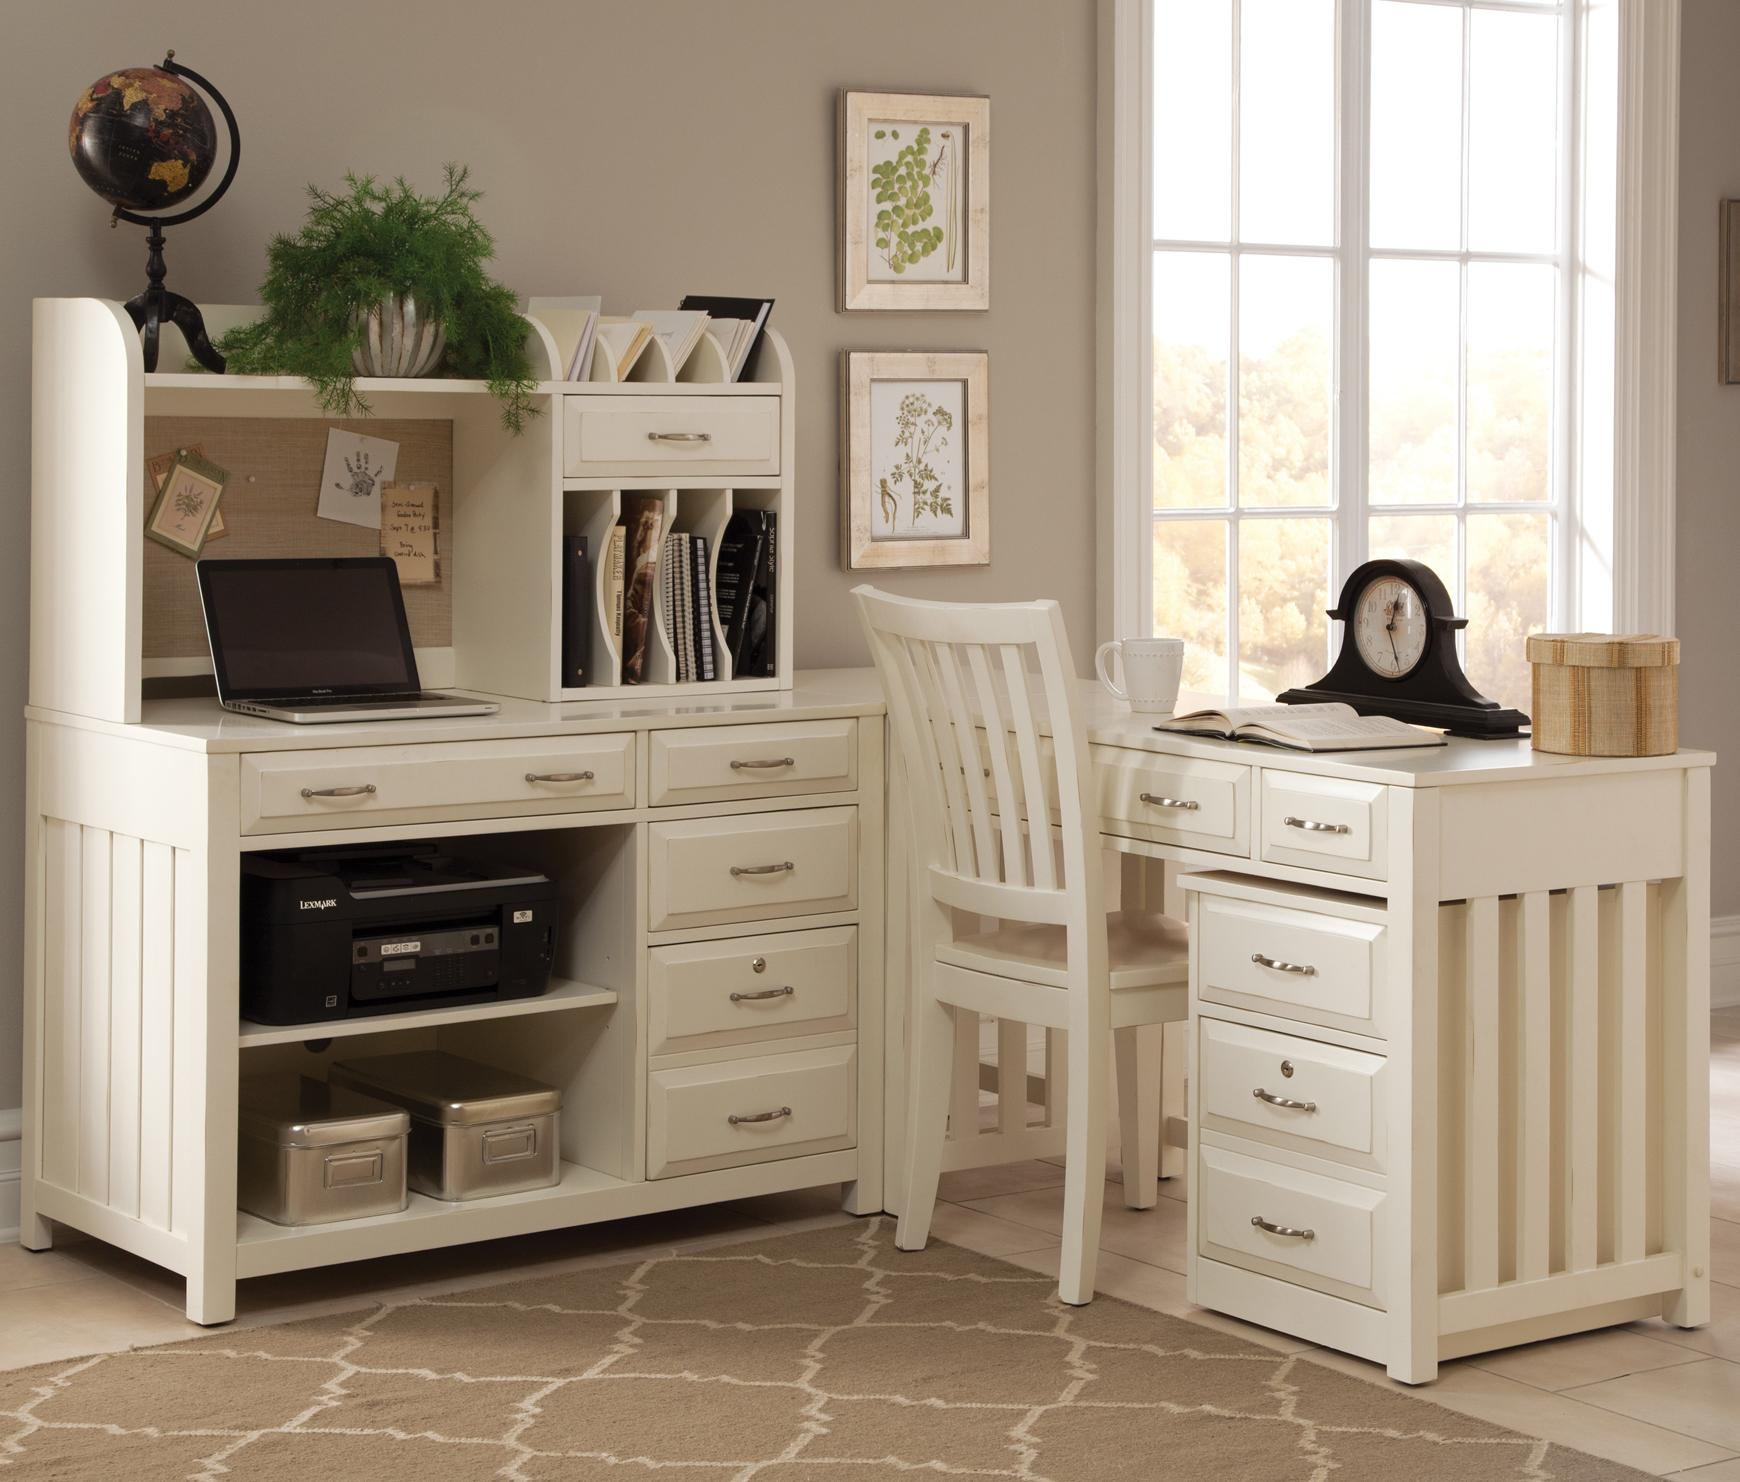 Desks With Drawers Hampton Bay White 5 Pc L Shaped Desk And File Chair Sold Seperate By Liberty Furniture At Wayside Furniture